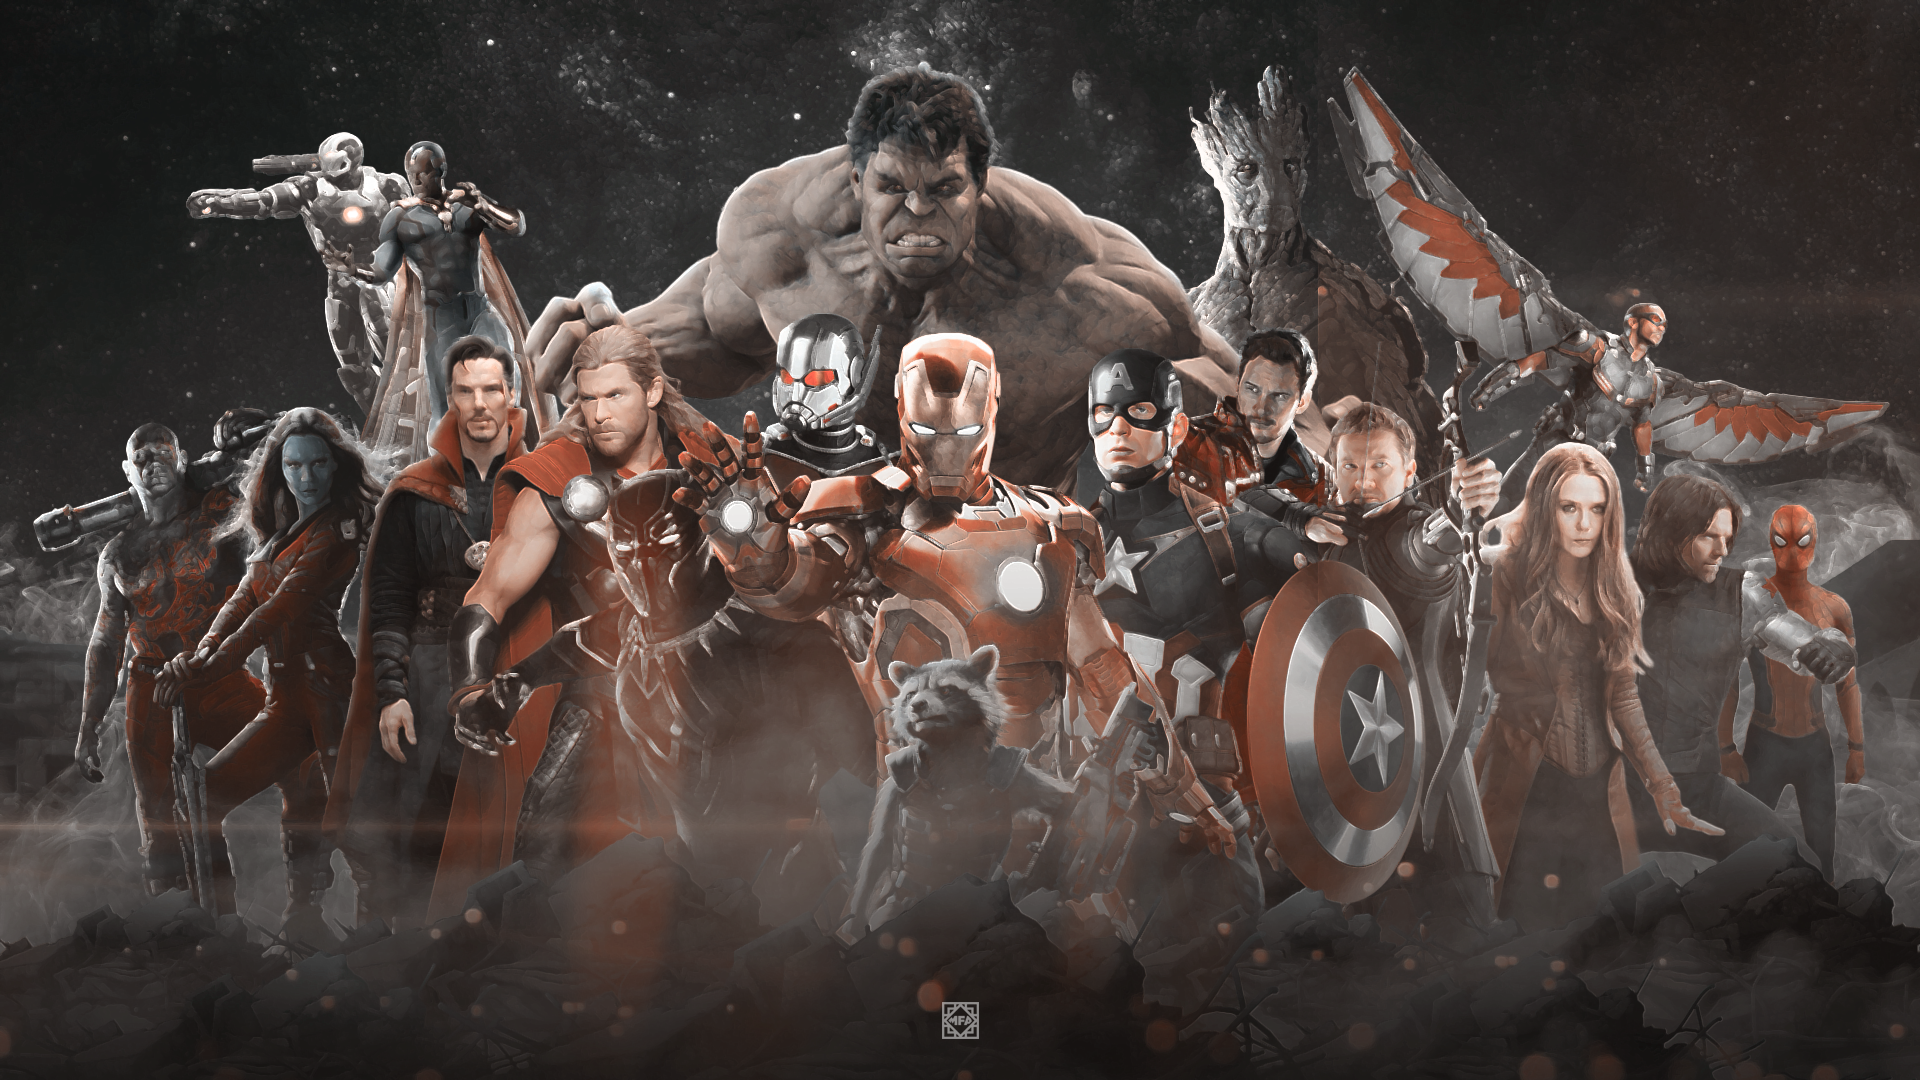 Movie - Avengers: Infinity War  Avengers Hulk Thor Ant-Man Wanda Maximoff Winter Soldier Vision (Marvel Comics) Falcon (Marvel Comics) War Machine Spider-Man Iron Man Captain America Black Widow Black Panther (Marvel Comics) Groot Rocket Raccoon Wallpaper